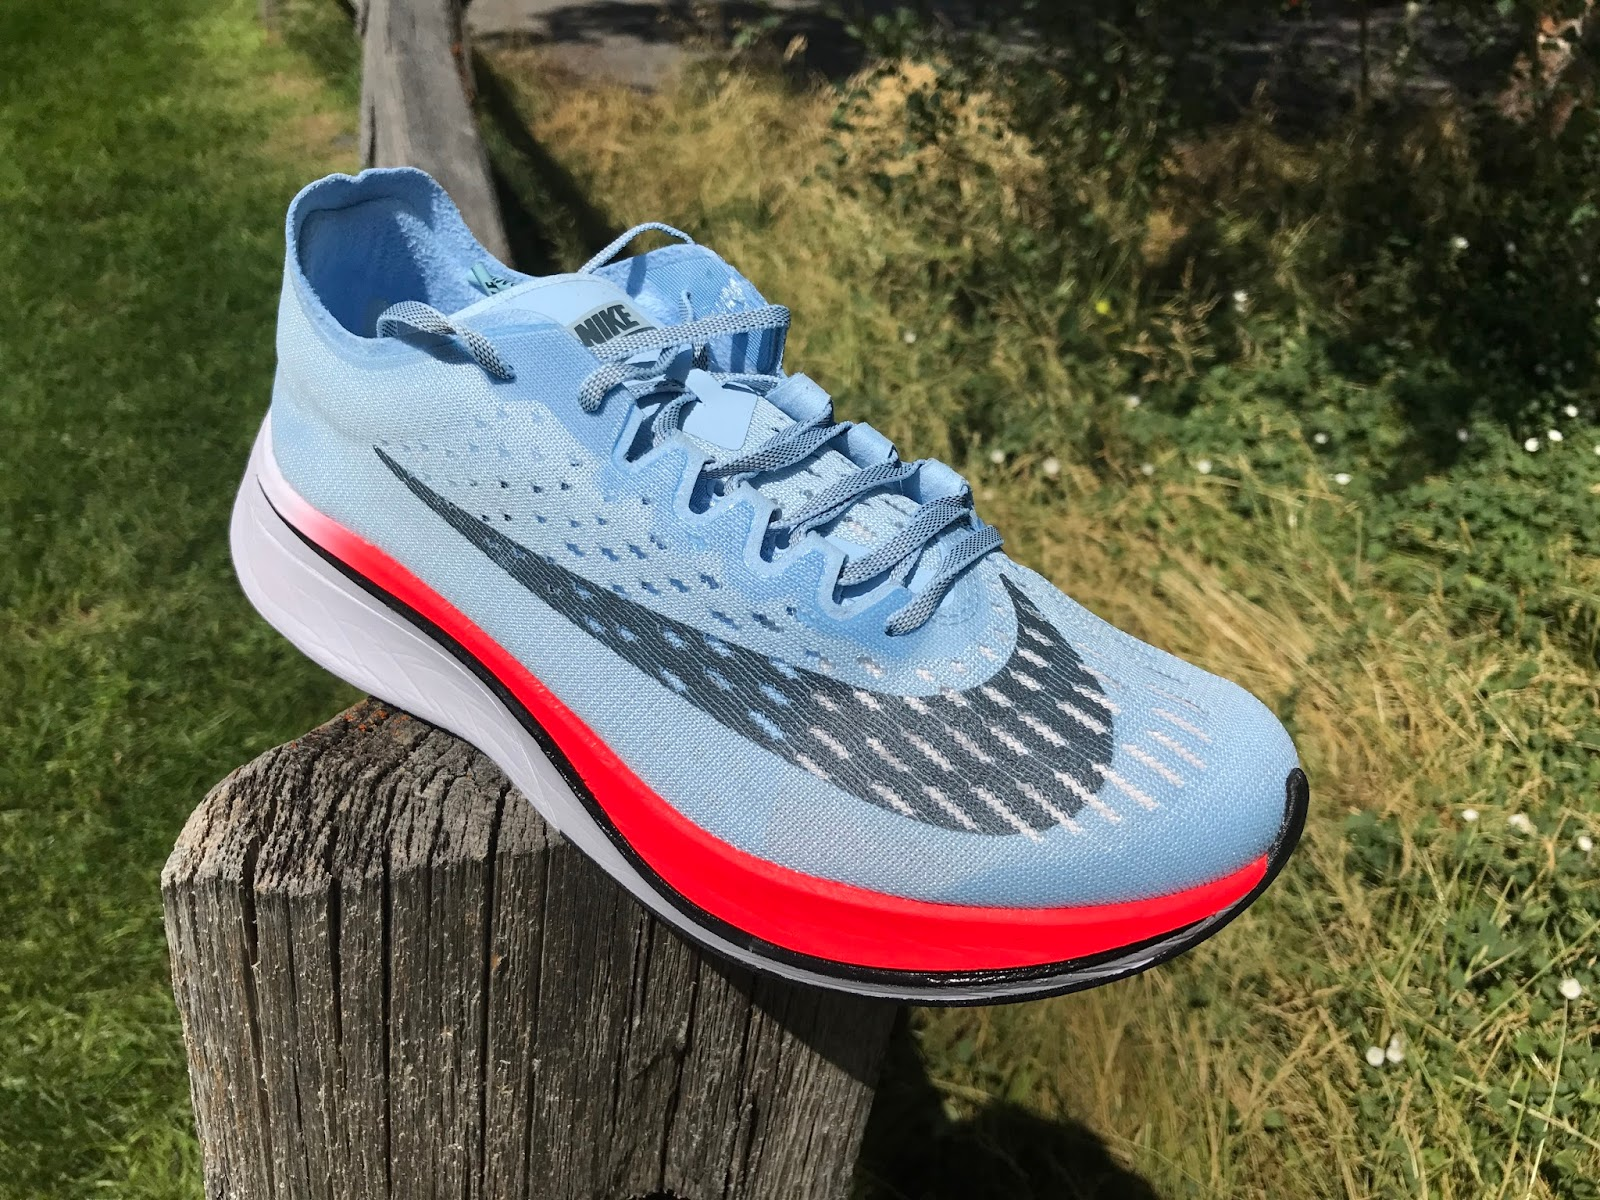 a9aa7af3e5c Road Trail Run: Nike Zoom Vaporfly 4% Detailed Breakdown Run and ...